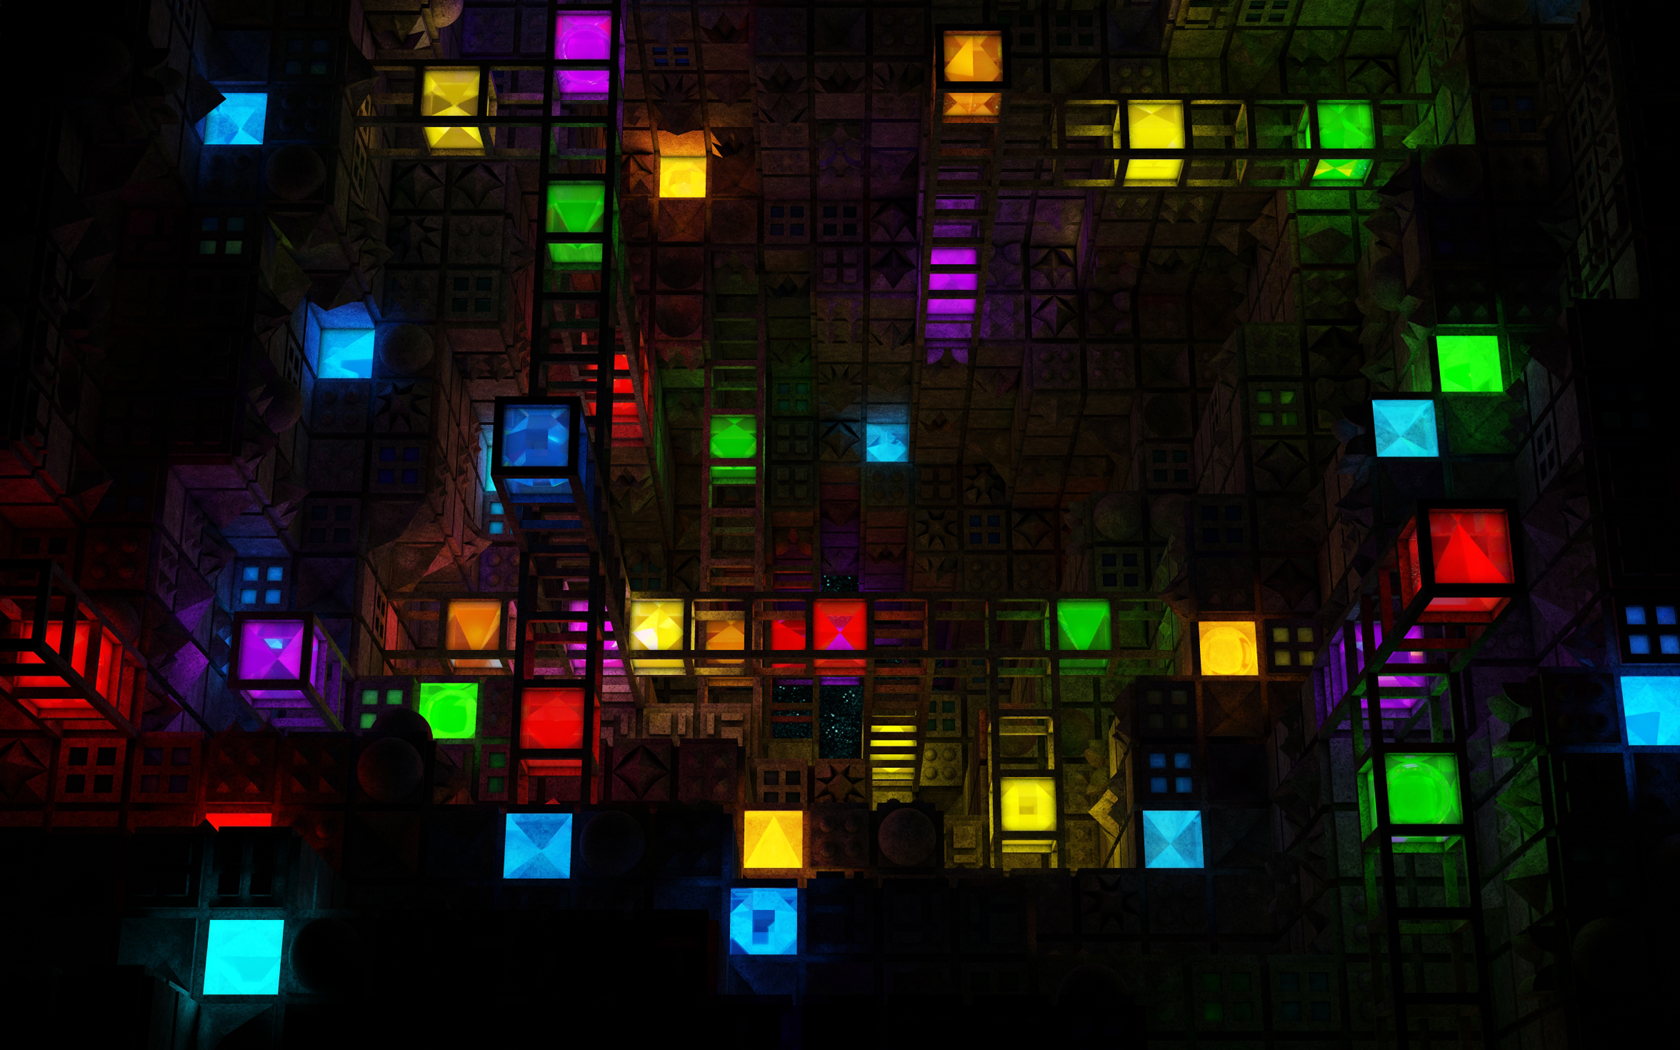 Abstract Multicolor Light Cube Hd Wallpaper Hd Latest